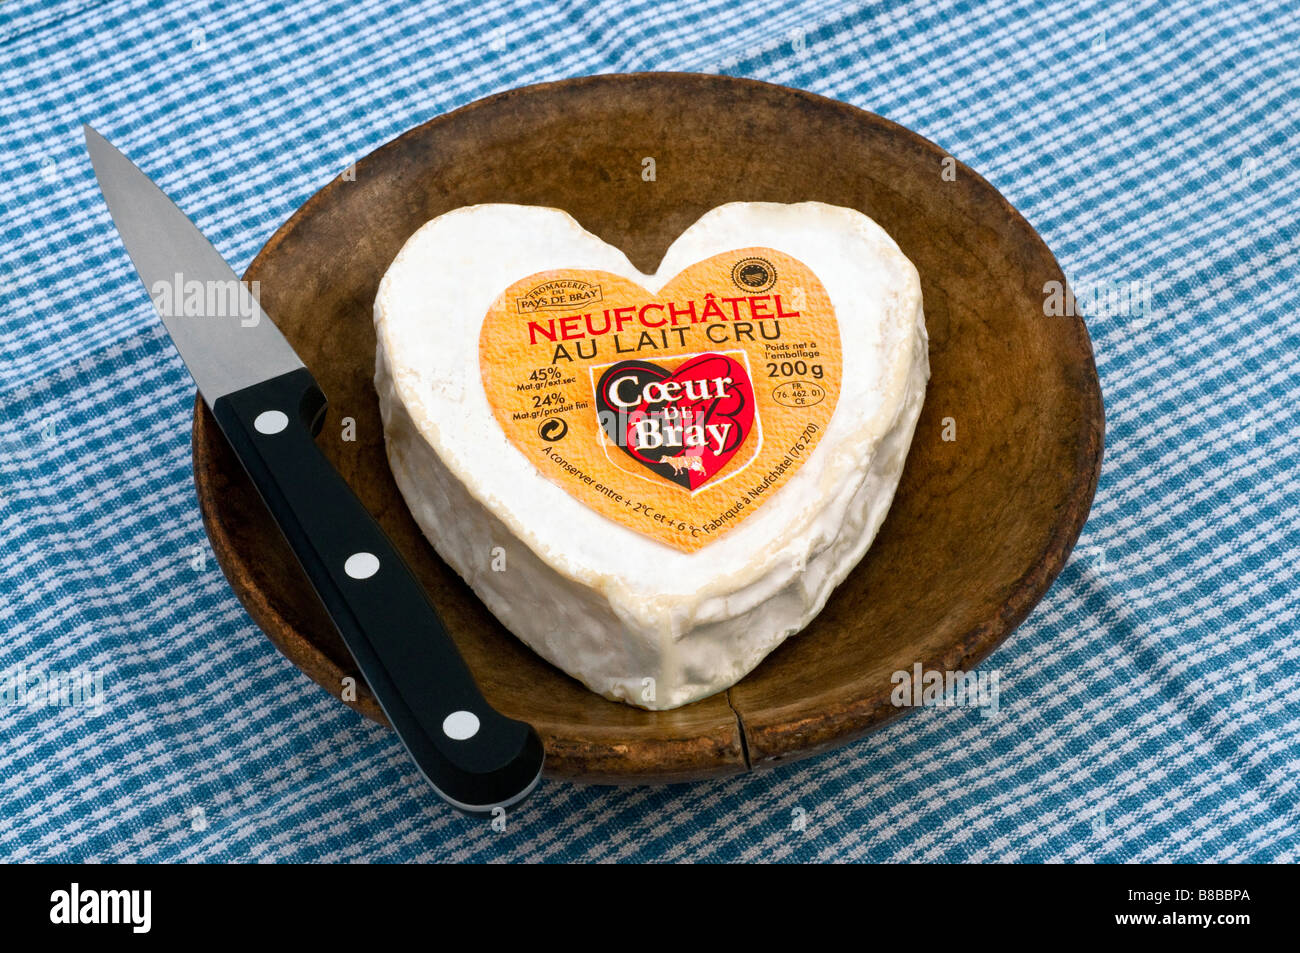 French heart shaped Neufchatel / Normandy fresh soft cheese in old wood bowl - Stock Image